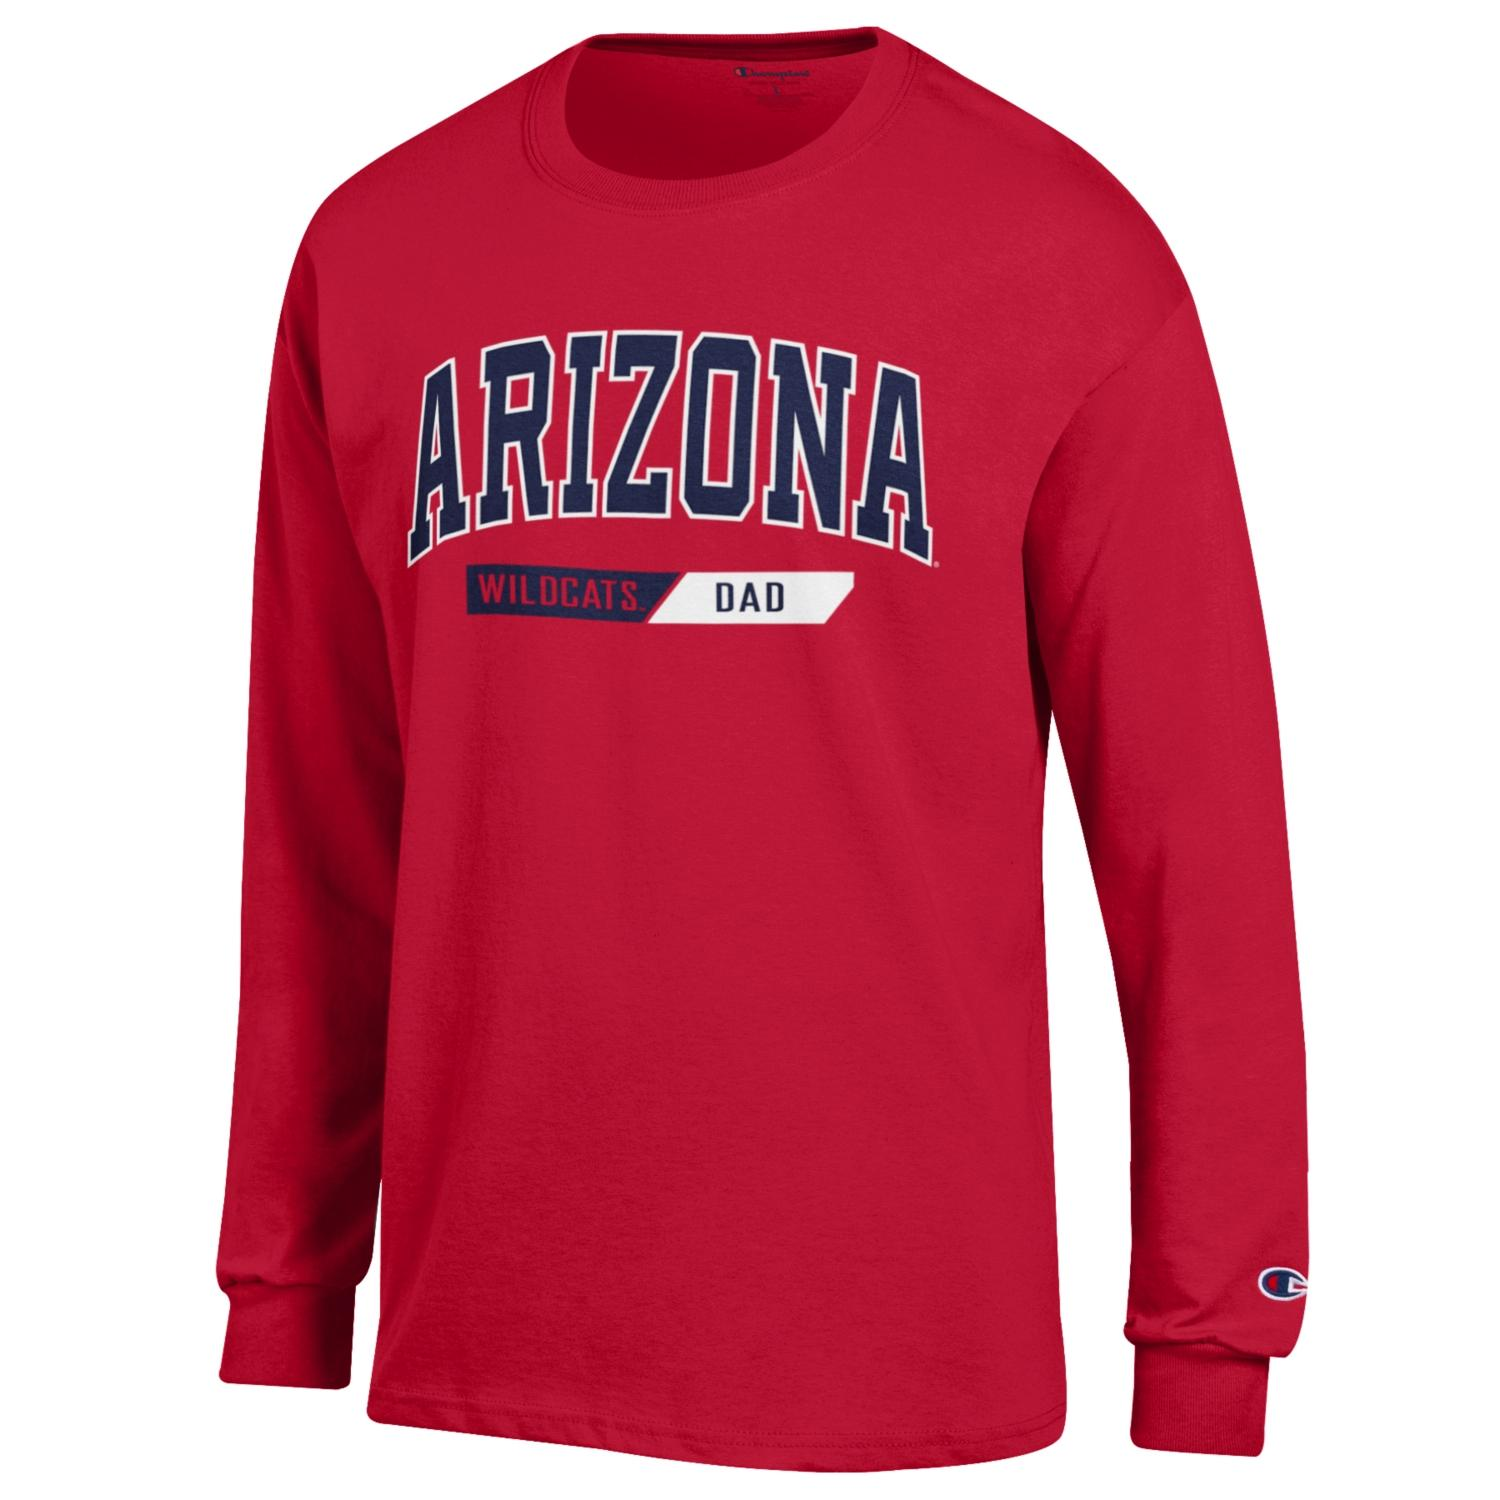 Image For Champion: Arizona Wildcats Dad Long Sleeve Jersey Tee - Red